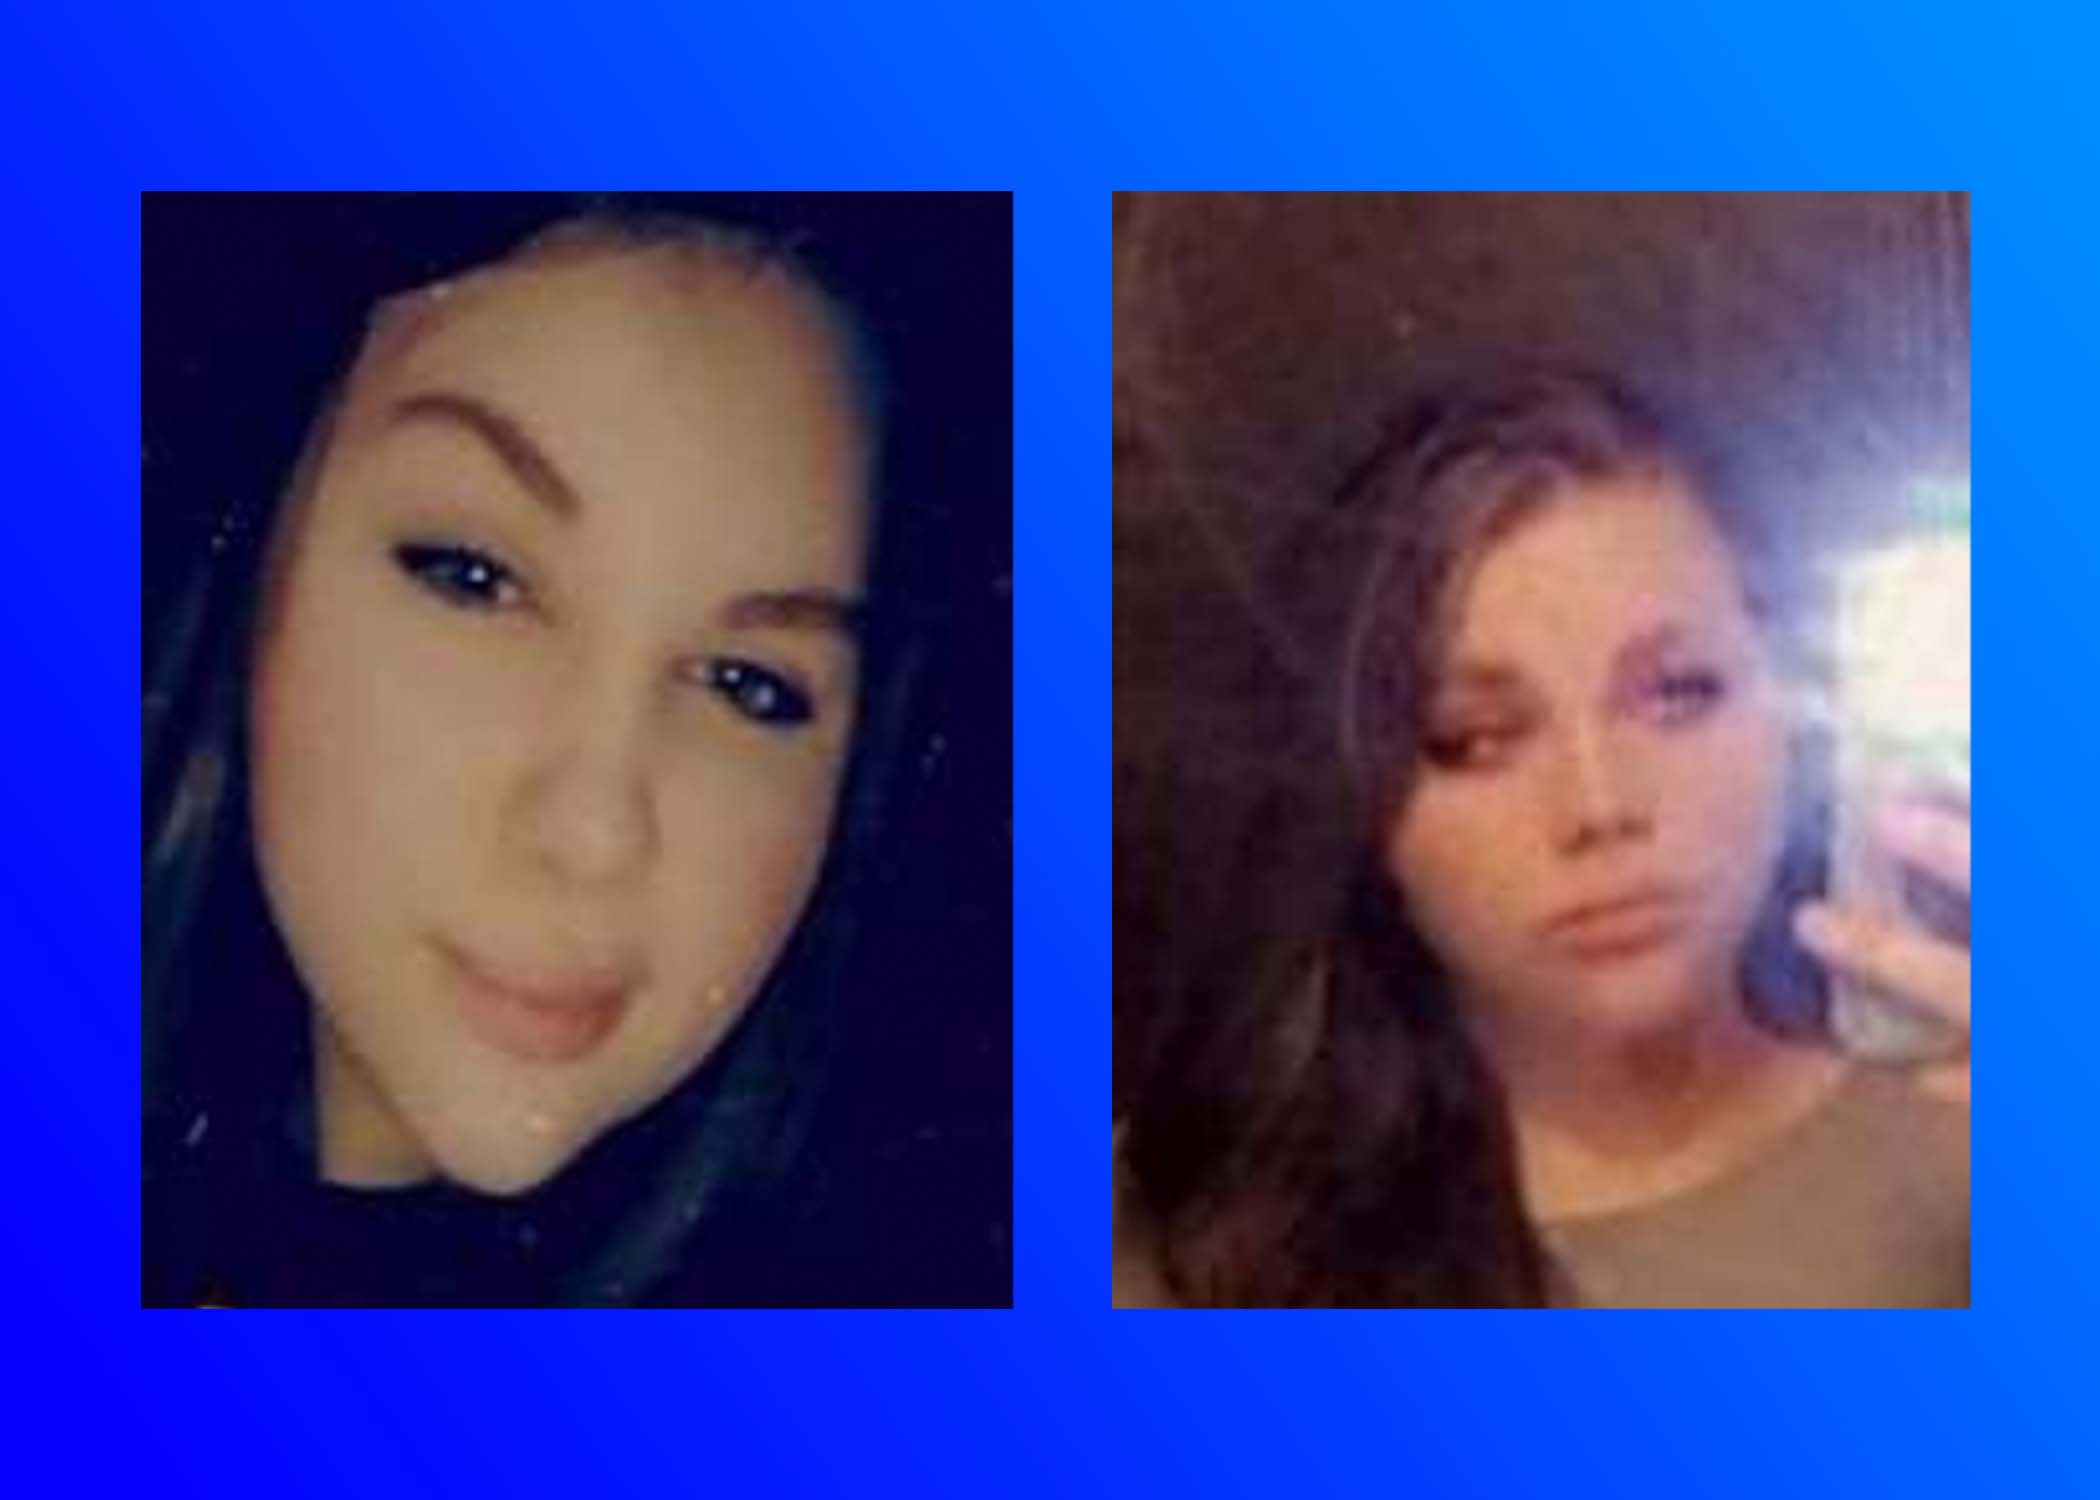 CANCELLED: Emergency Missing Child Alert issued for missing 14-year-old